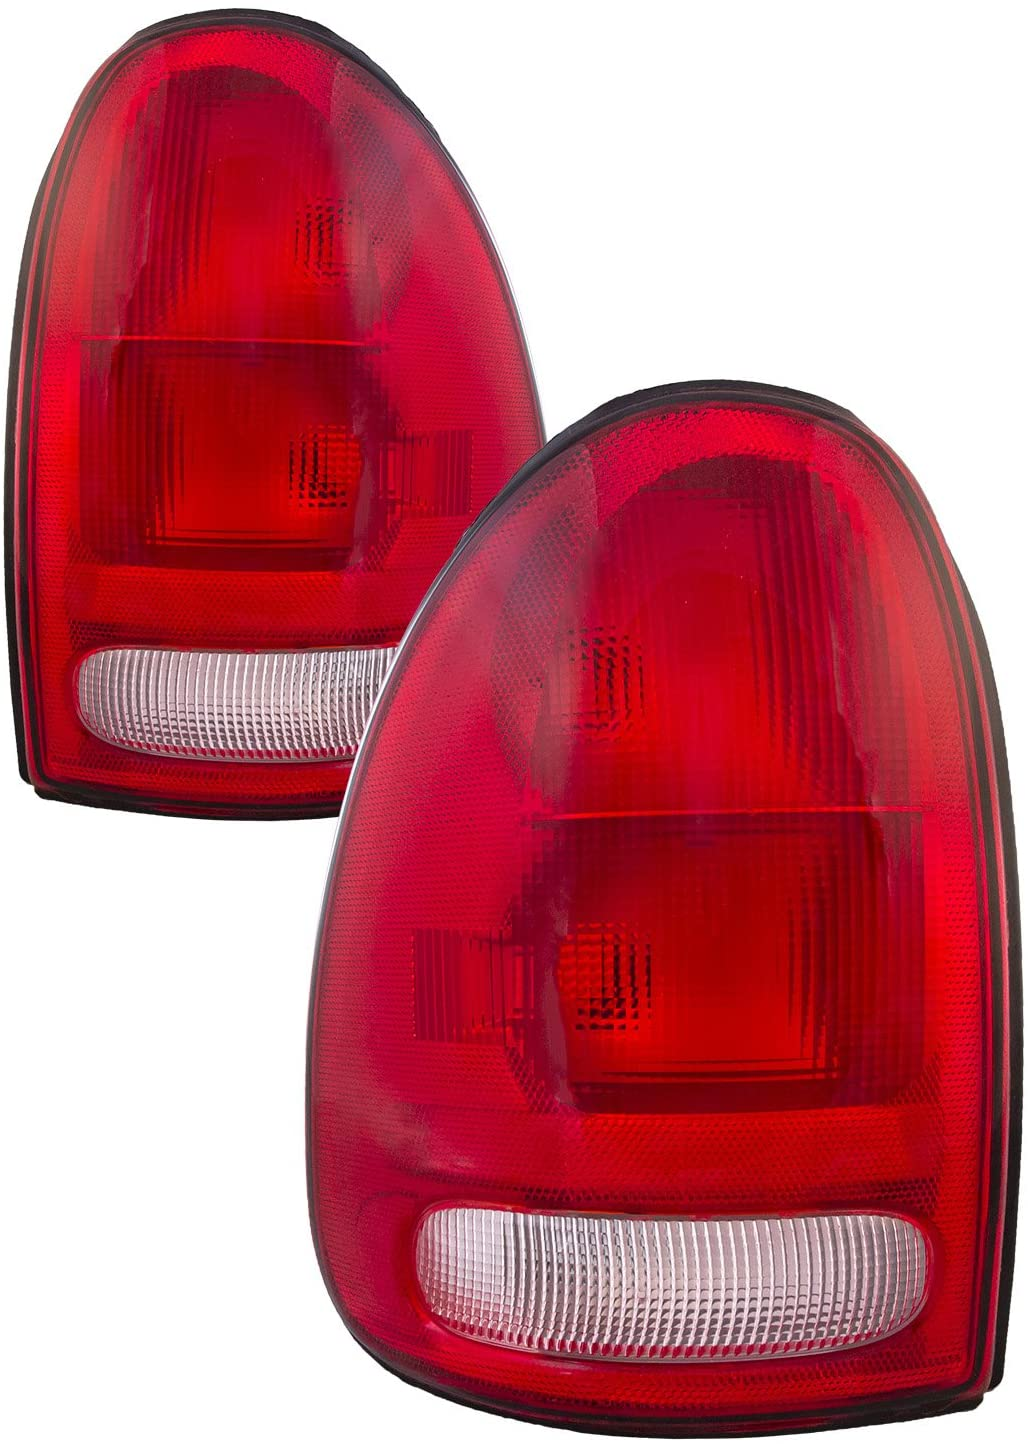 HEADLIGHTSDEPOT Tail Light Compatible with Chrysler Dodge Plymouth Caravan Durango Town & Country Voyager Includes Left Driver and Right Passenger Side Tail Lights